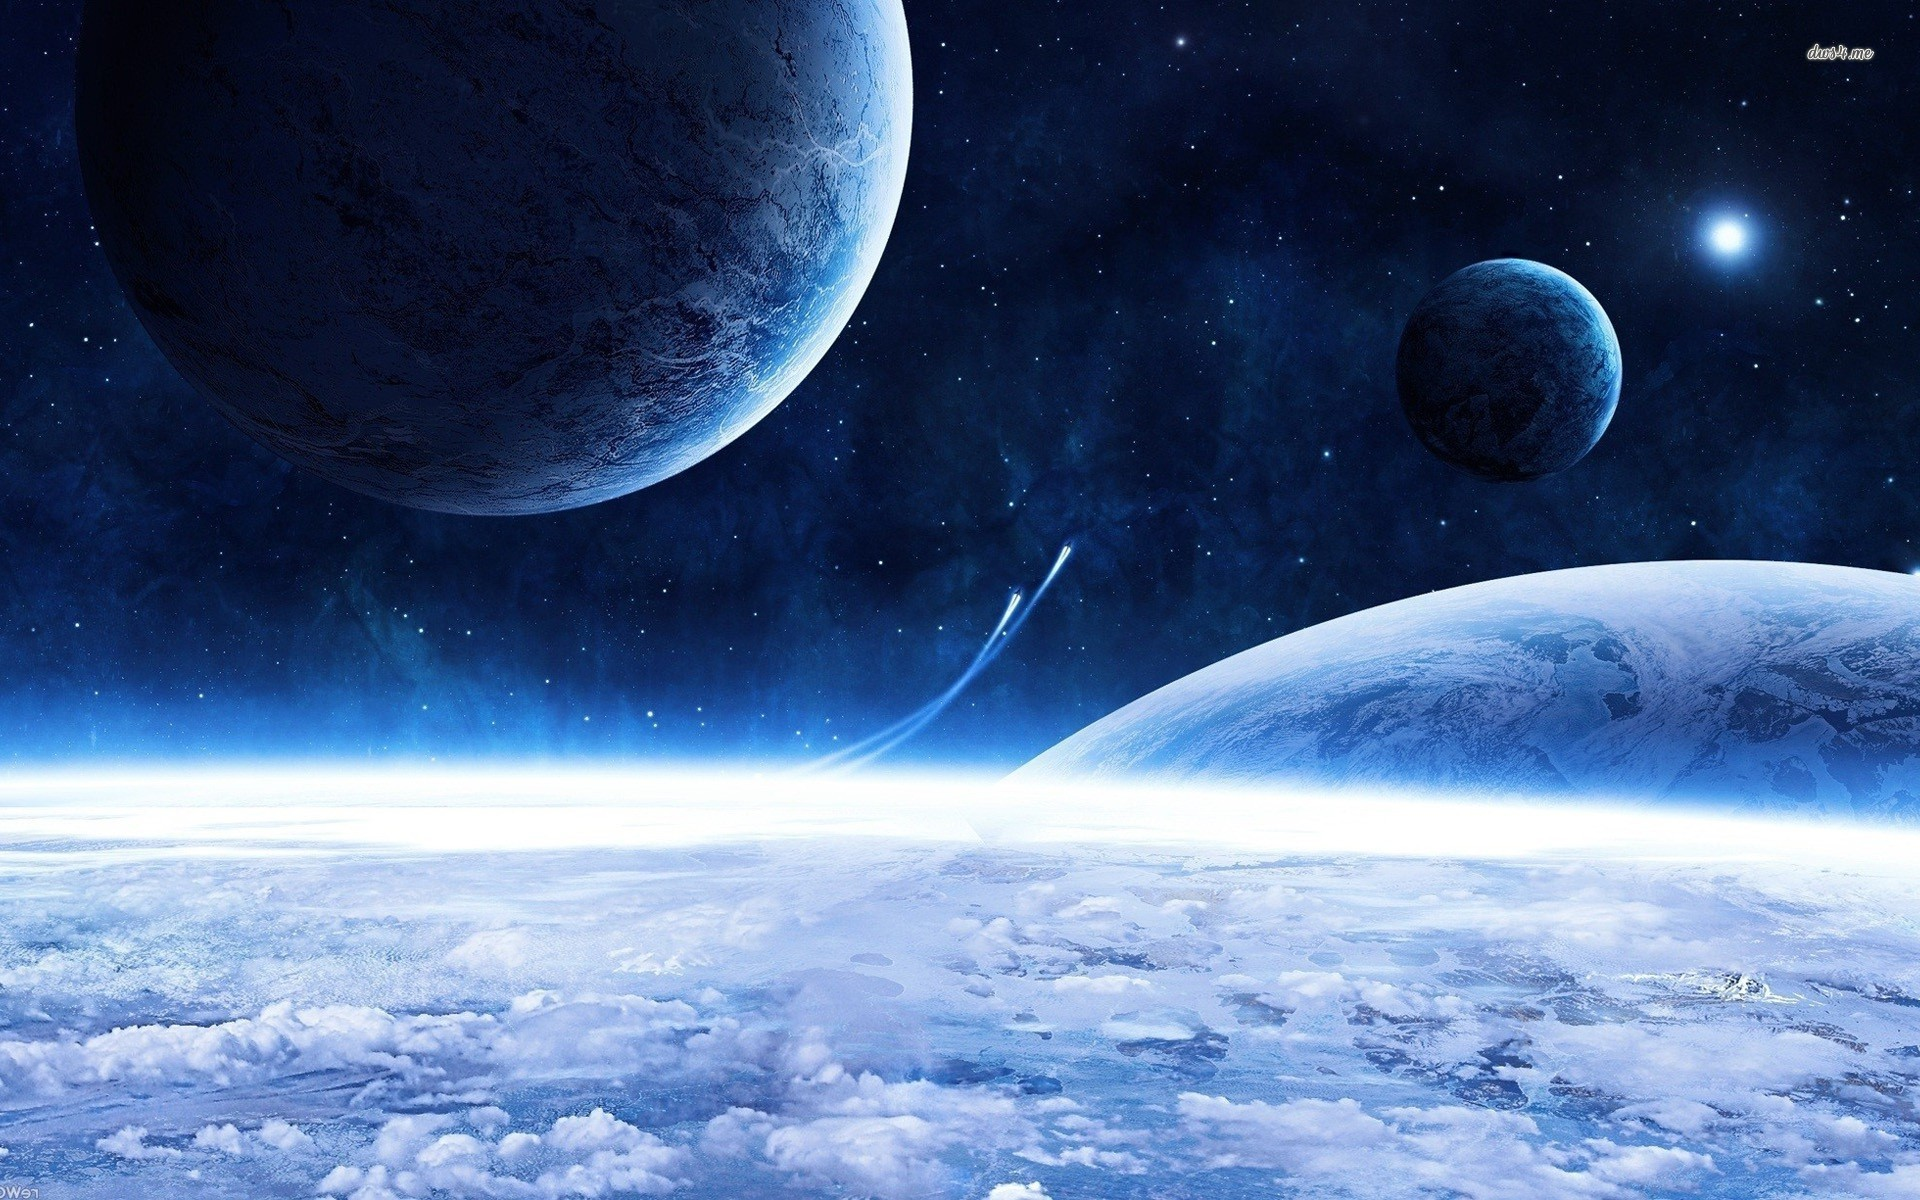 Fantasy space wallpapers 71 images - Space wallpaper 1920x1200 ...